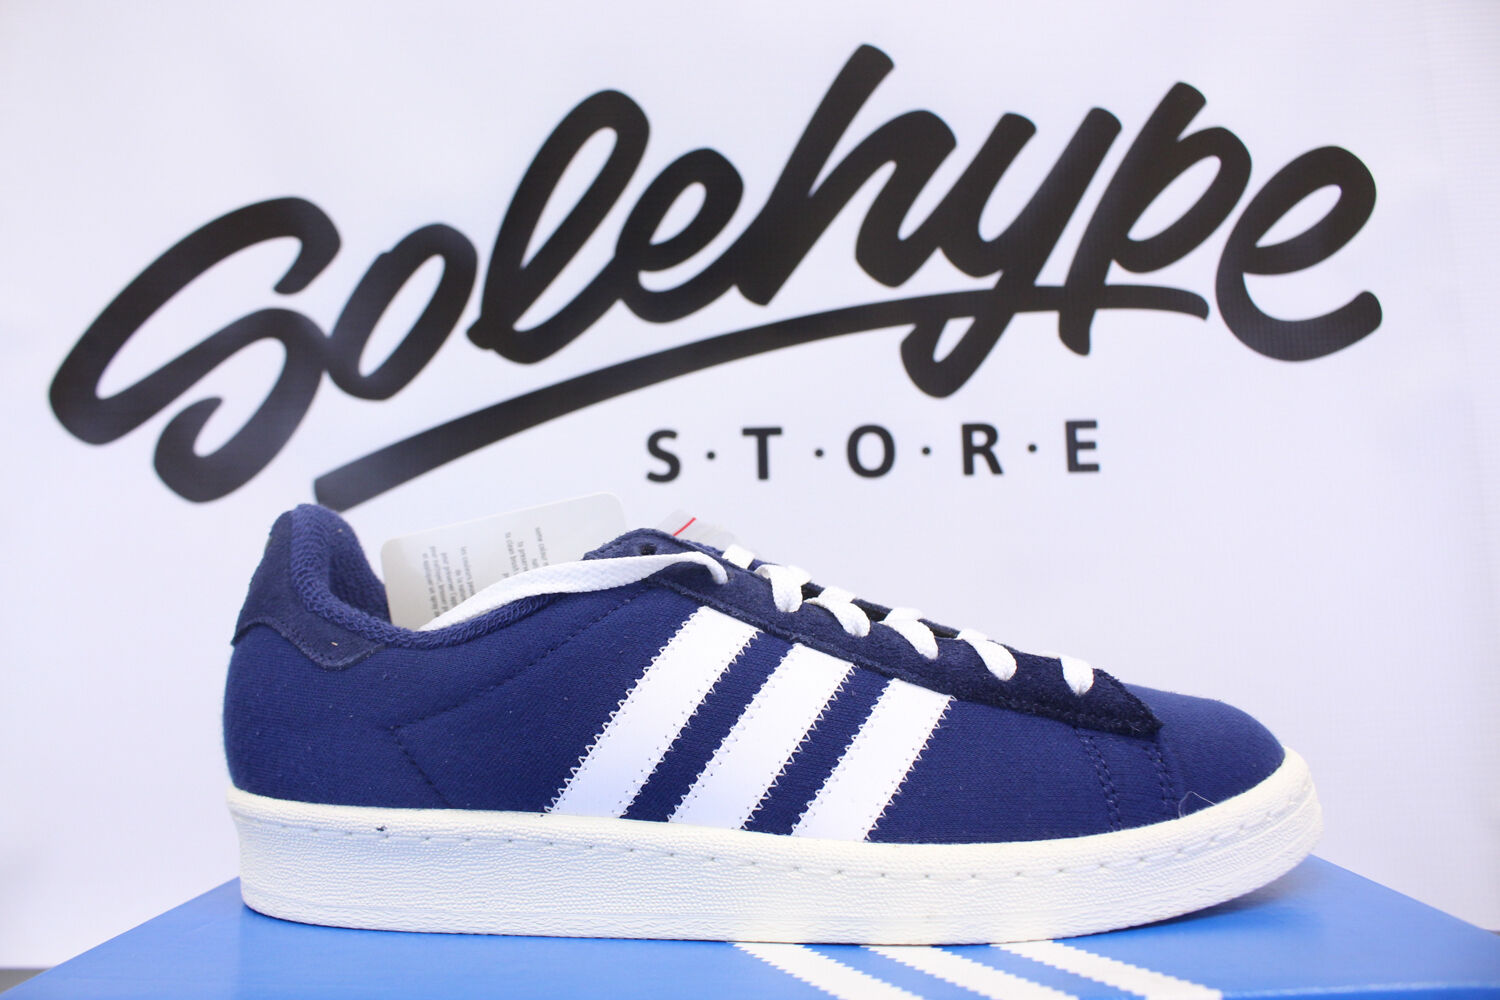 ADIDAS CAMPUS 80'S HEART BW BEDWIN AND THE HEART 80'S BREAKERS BLUE WHITE S75674 SZ 6 2c400e